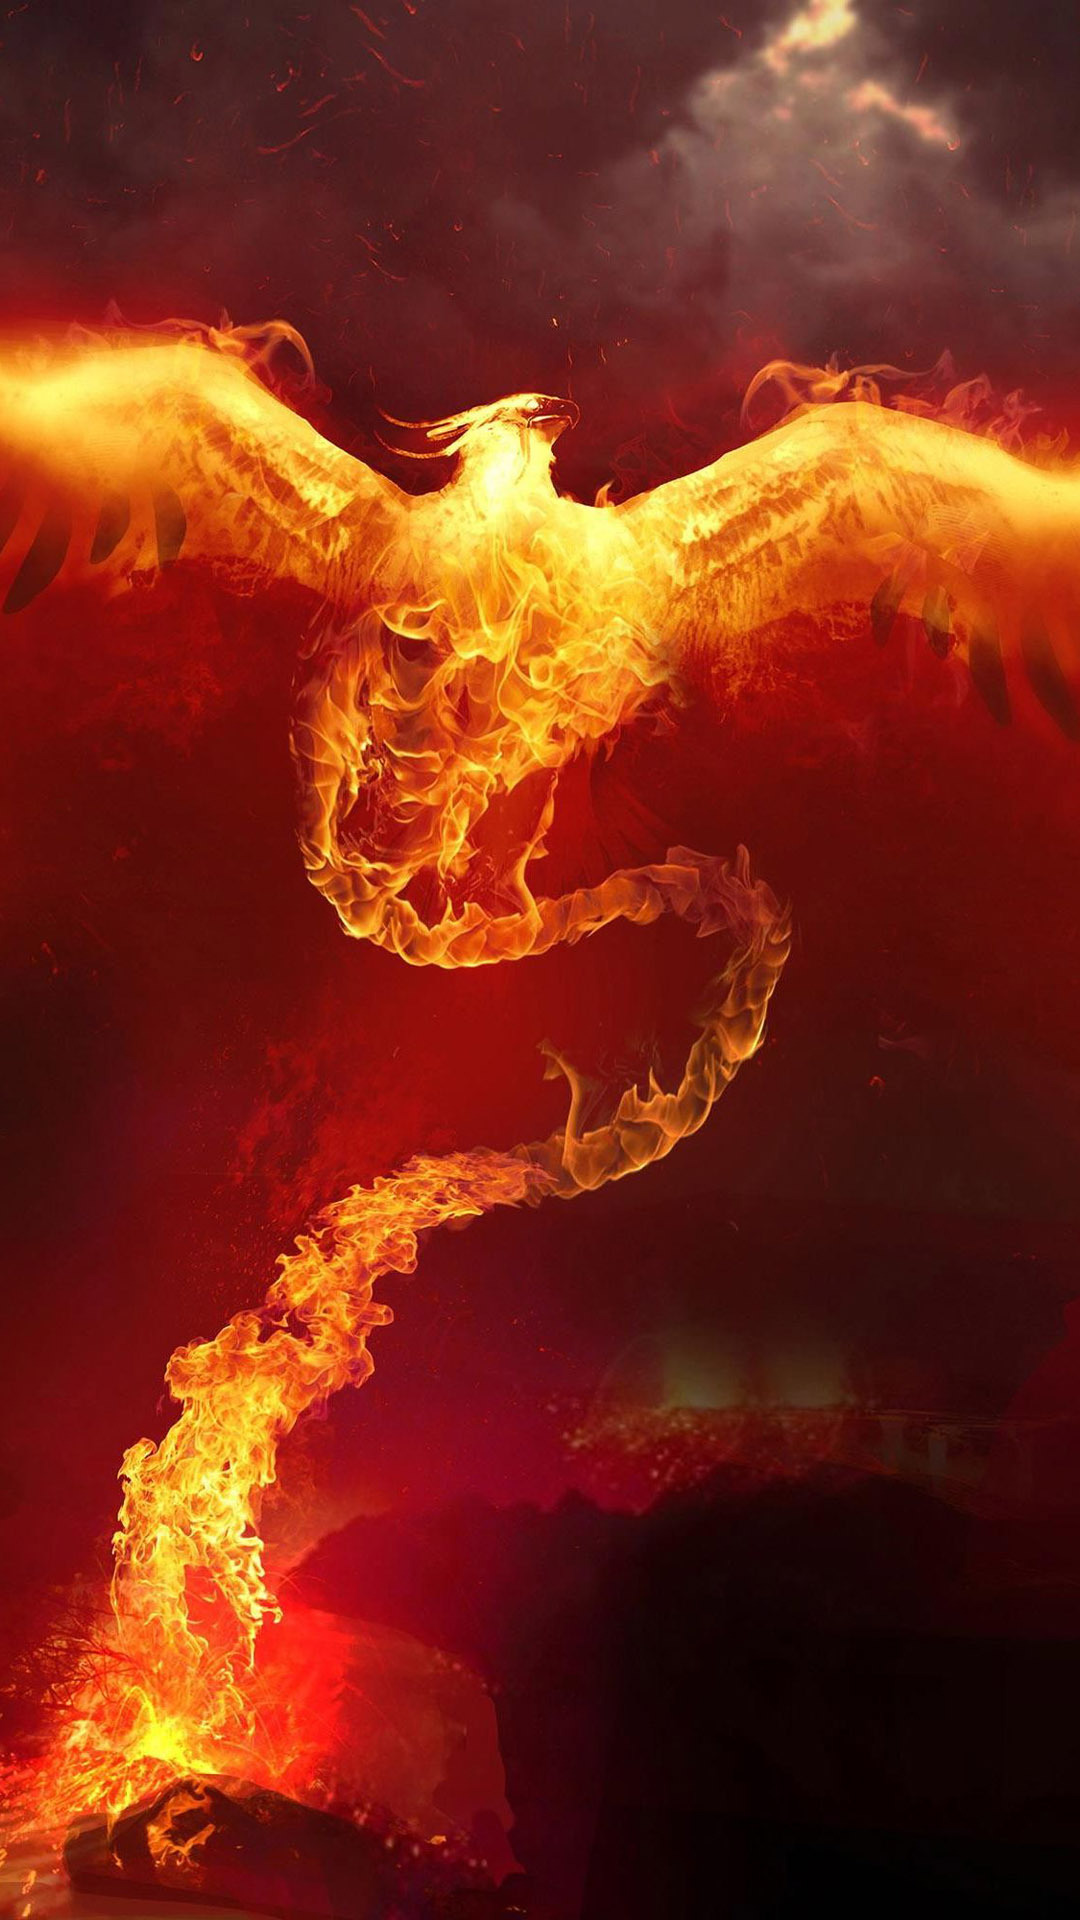 Phoenix Best Htc One Wallpapers Free And Easy To Download